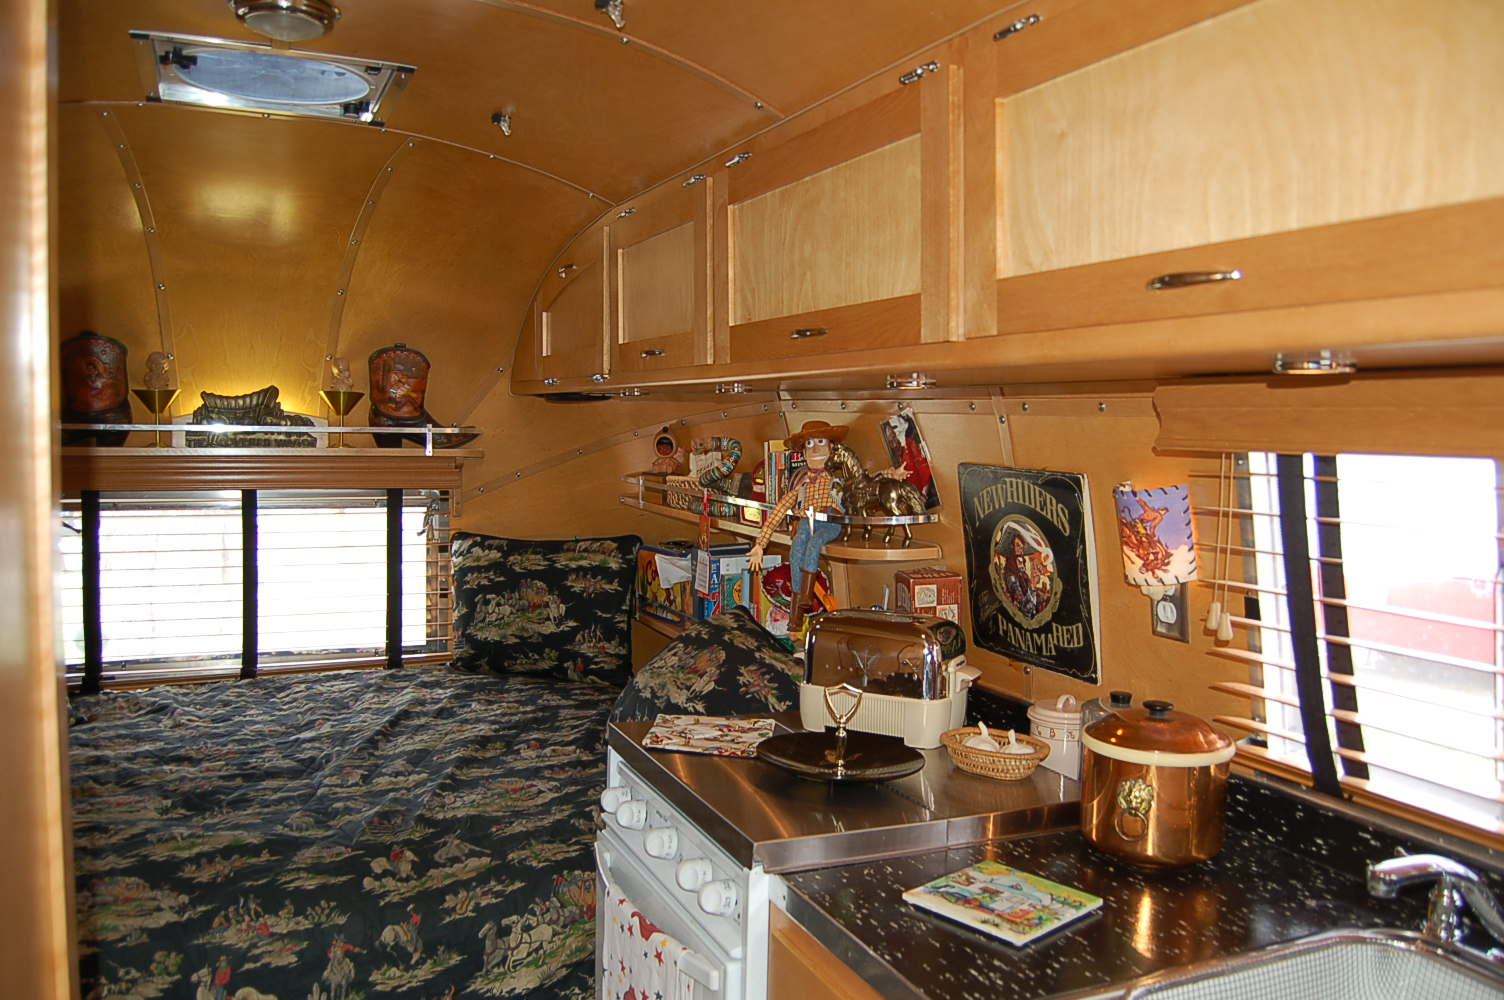 Superb Vintage 1961 Airstream Globetrotter With Very Fine Wood Ceiling Cabinetry